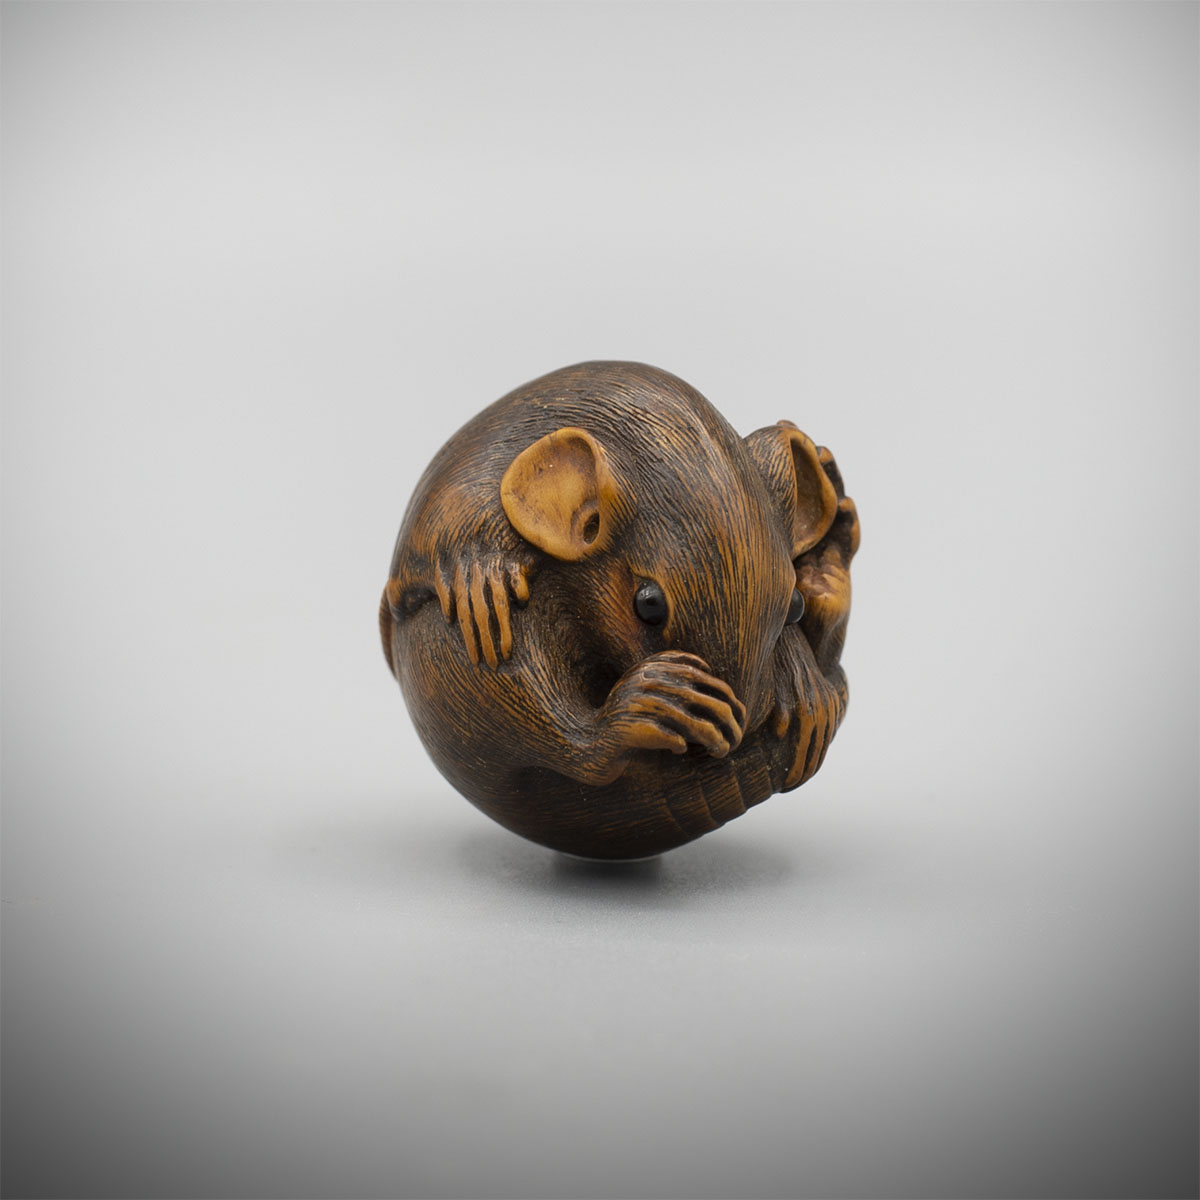 Wood Netsuke of a Balled Rat by Masanao of Ise, MR3366_v1